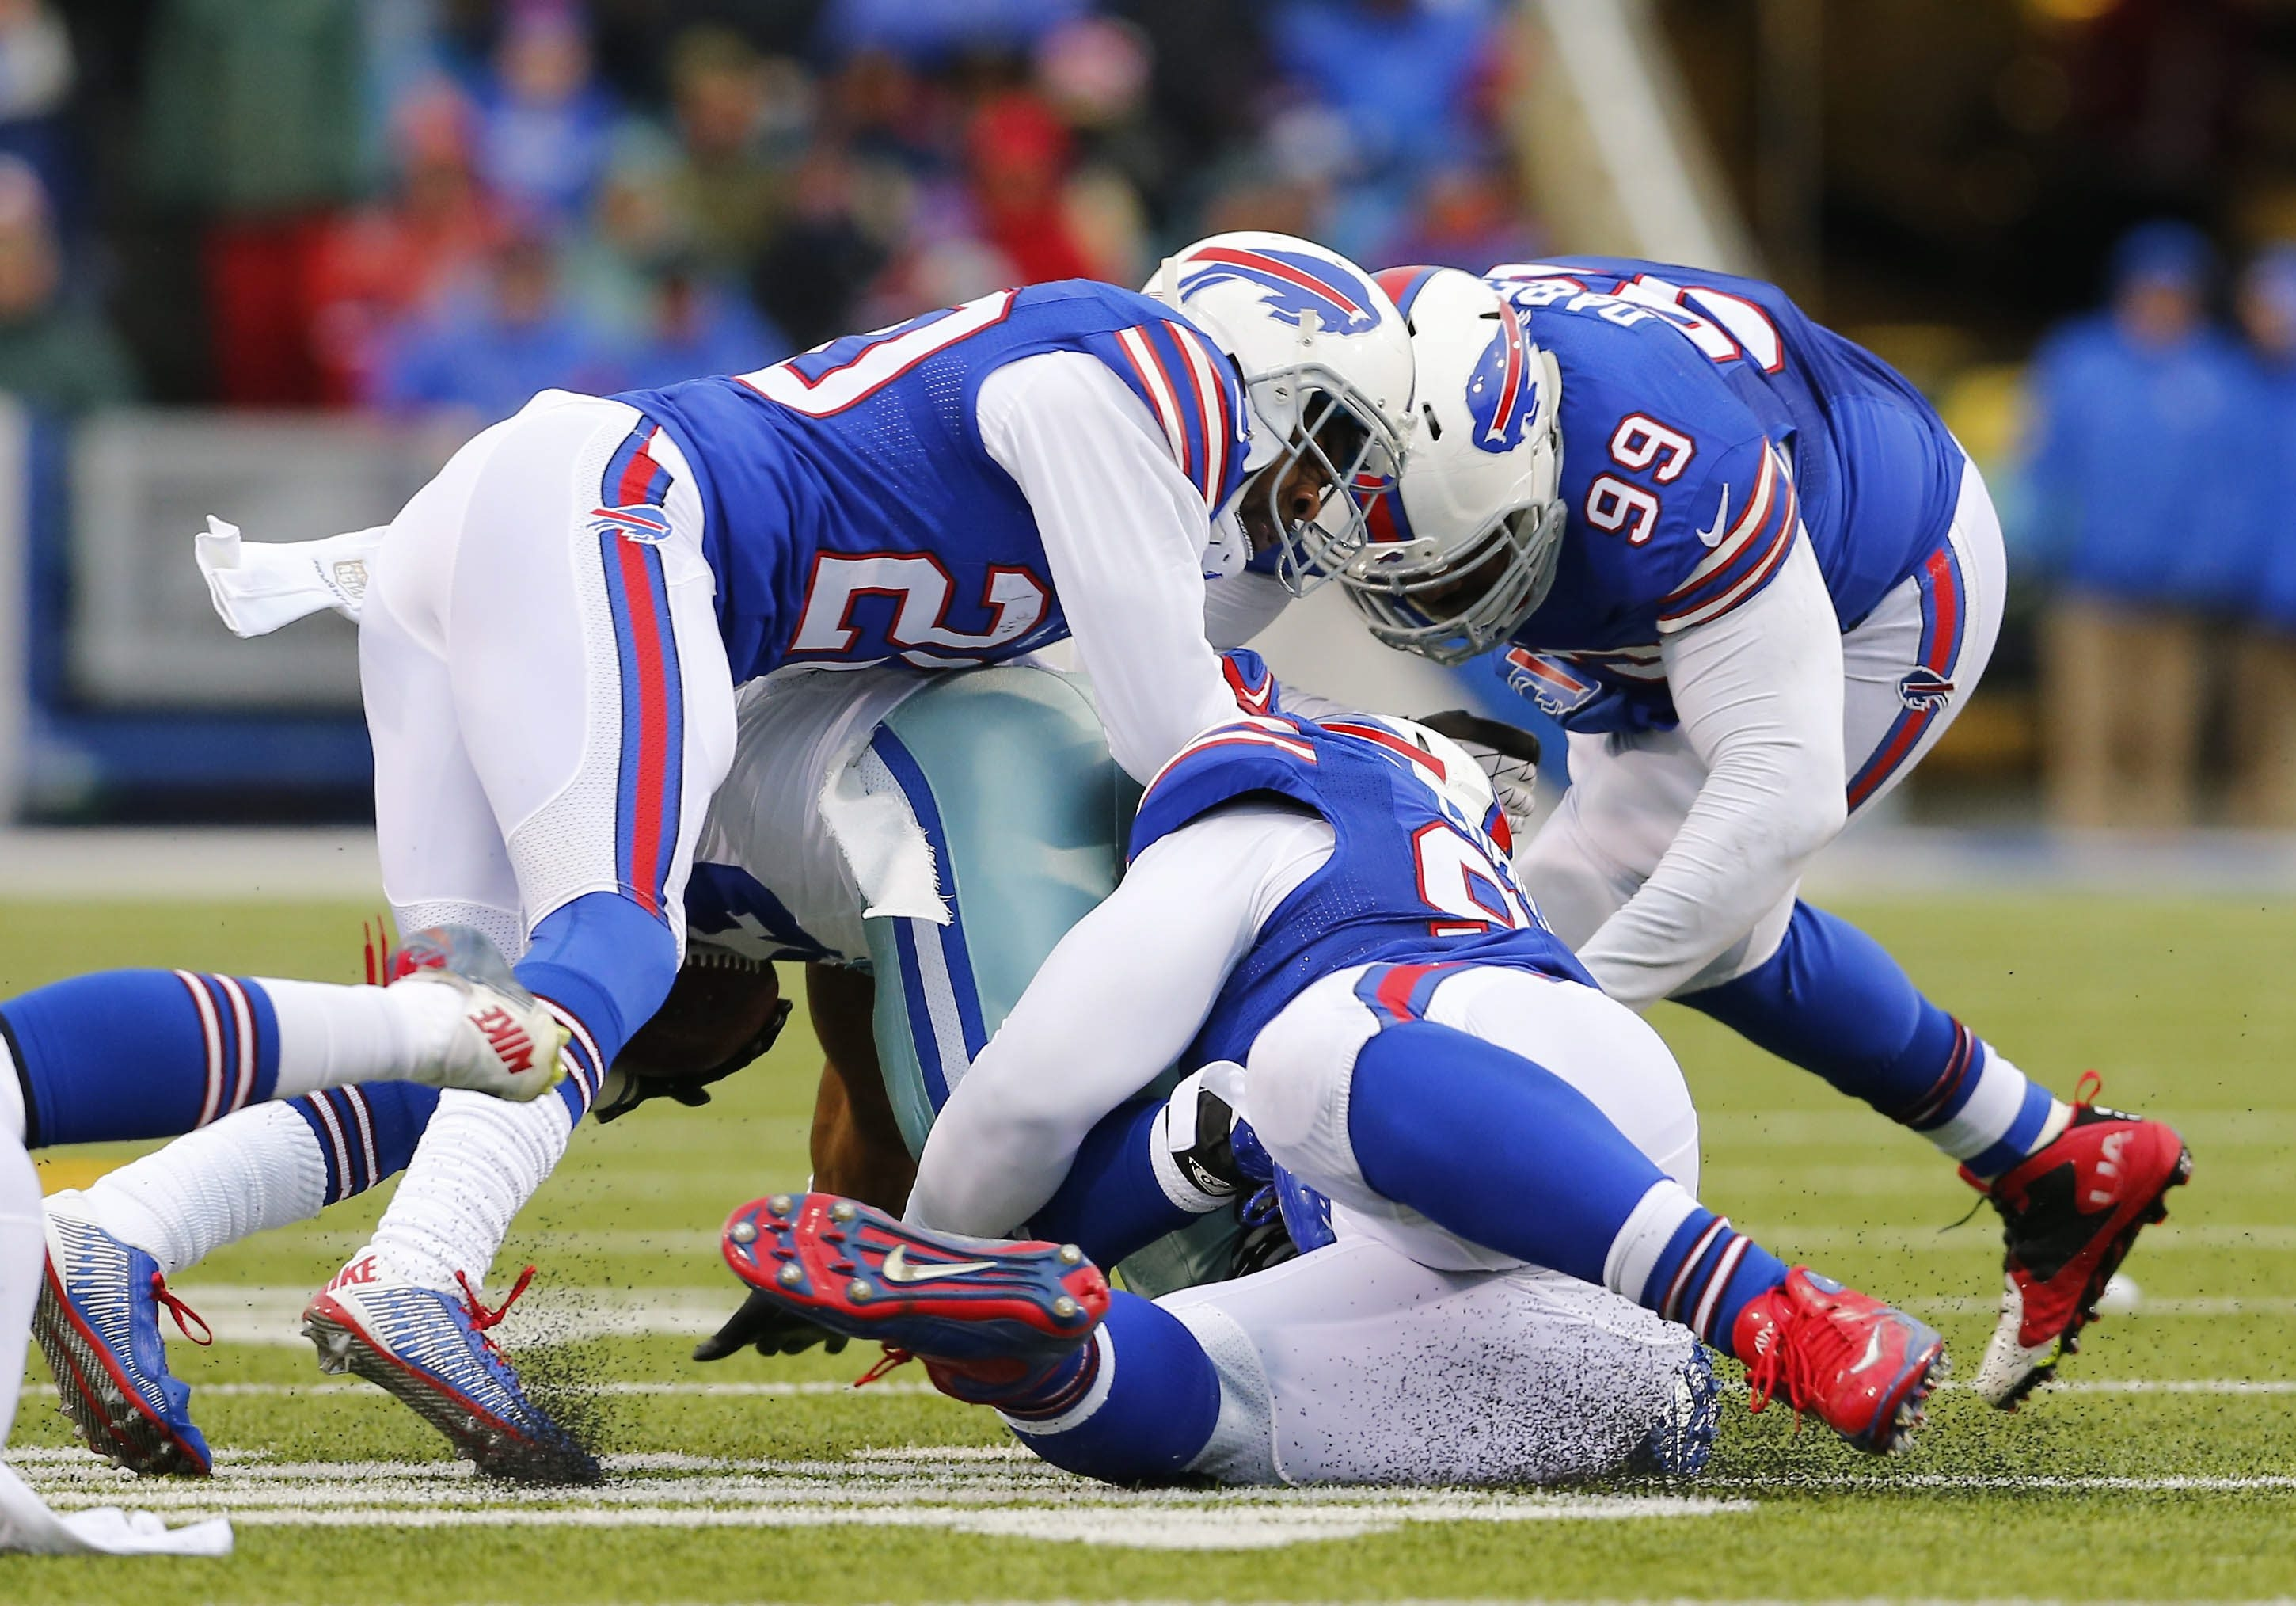 Bills defensive tackle Marcell Dareus (99) is in on the tackle of Cowboys running back Robert Turbin during the second quarter. Dareus left with a neck injury and did not return.